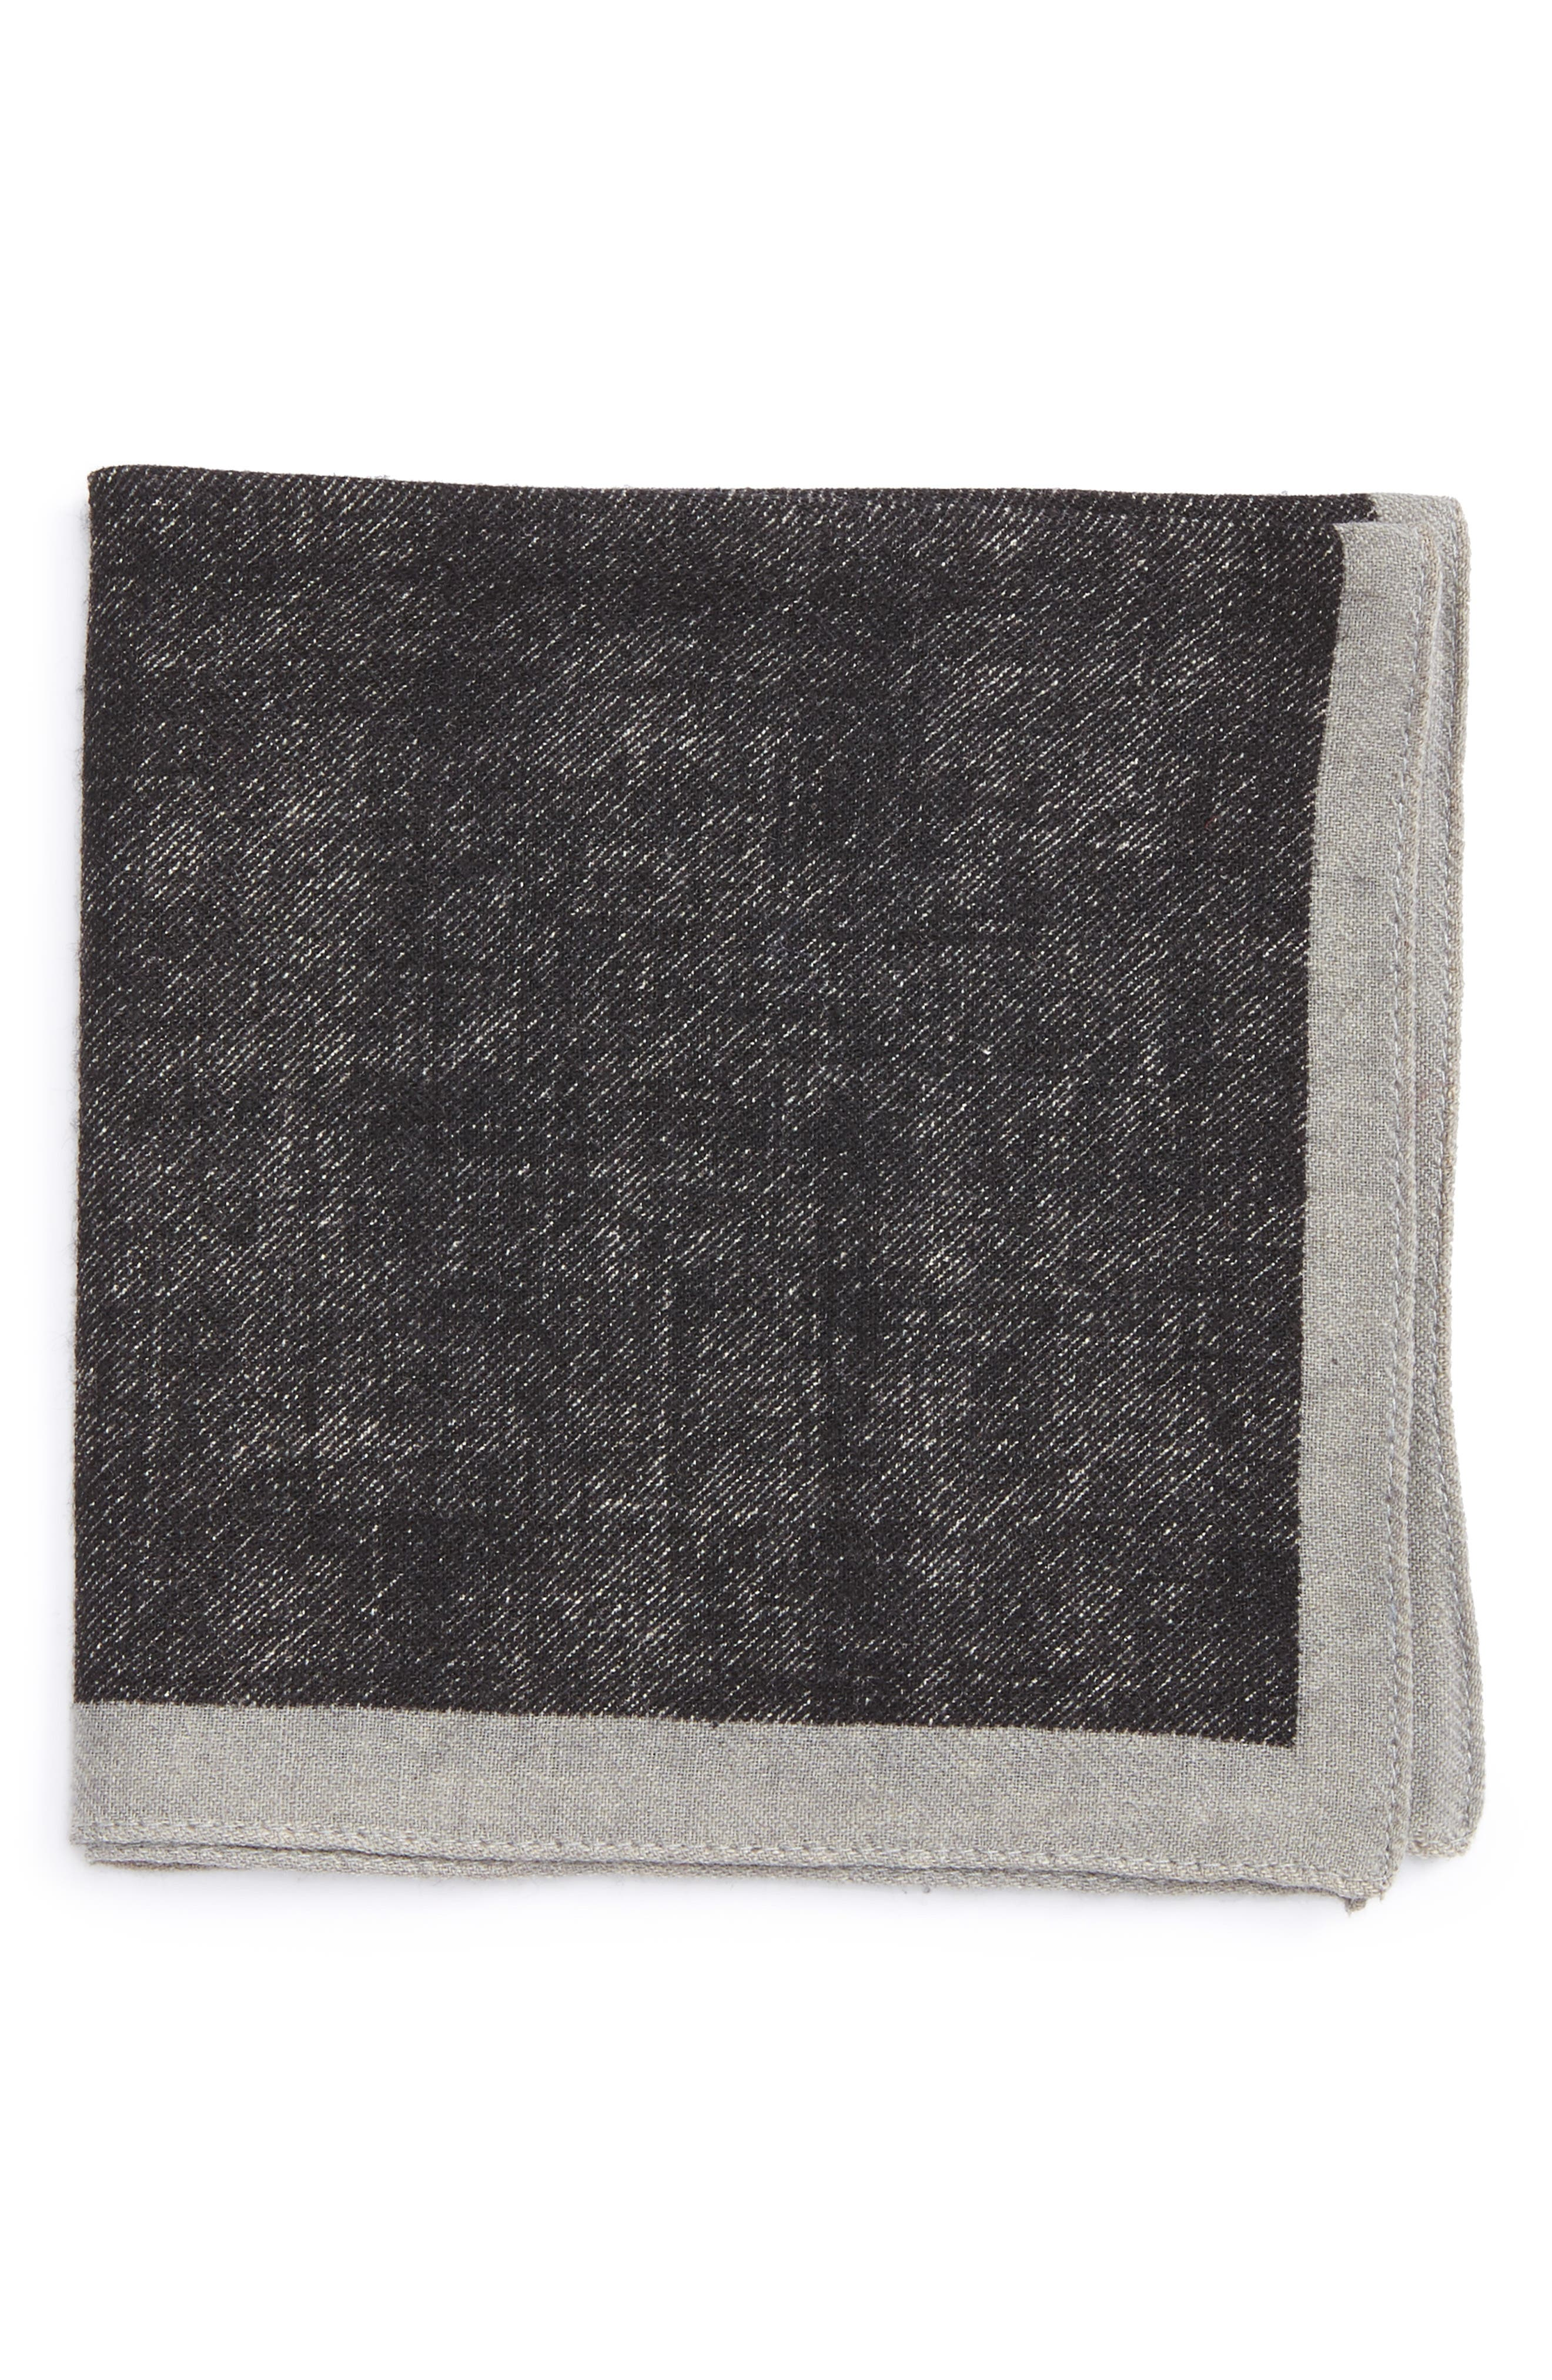 Alternate Image 1 Selected - BOSS Solid Wool Pocket Square